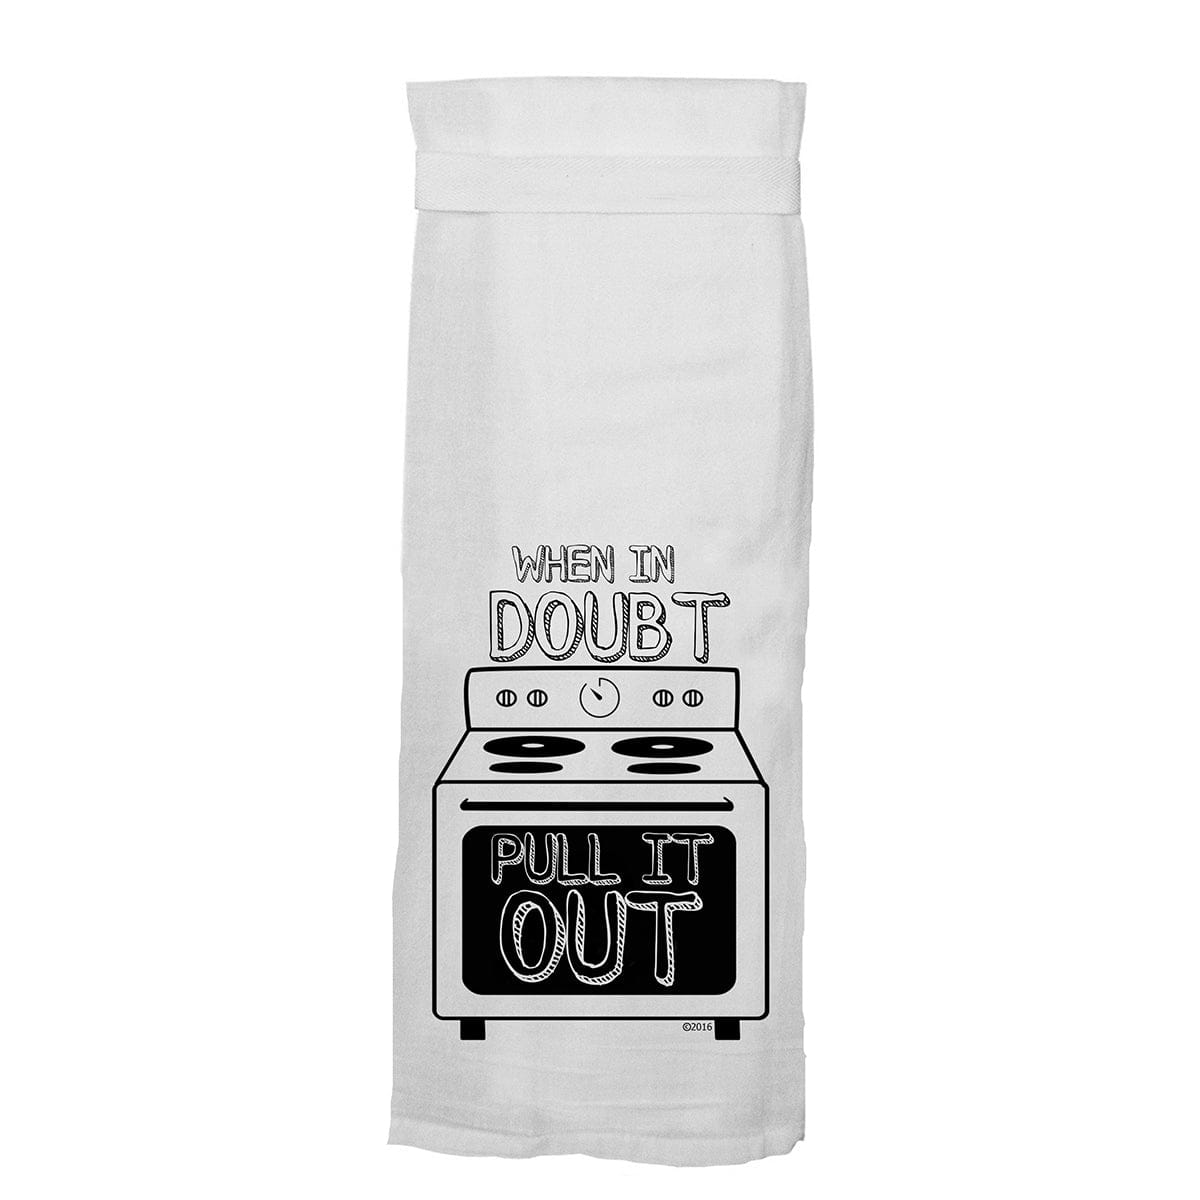 When In Doubt Pull It Out Flour Towel by Twisted Wares - rolik